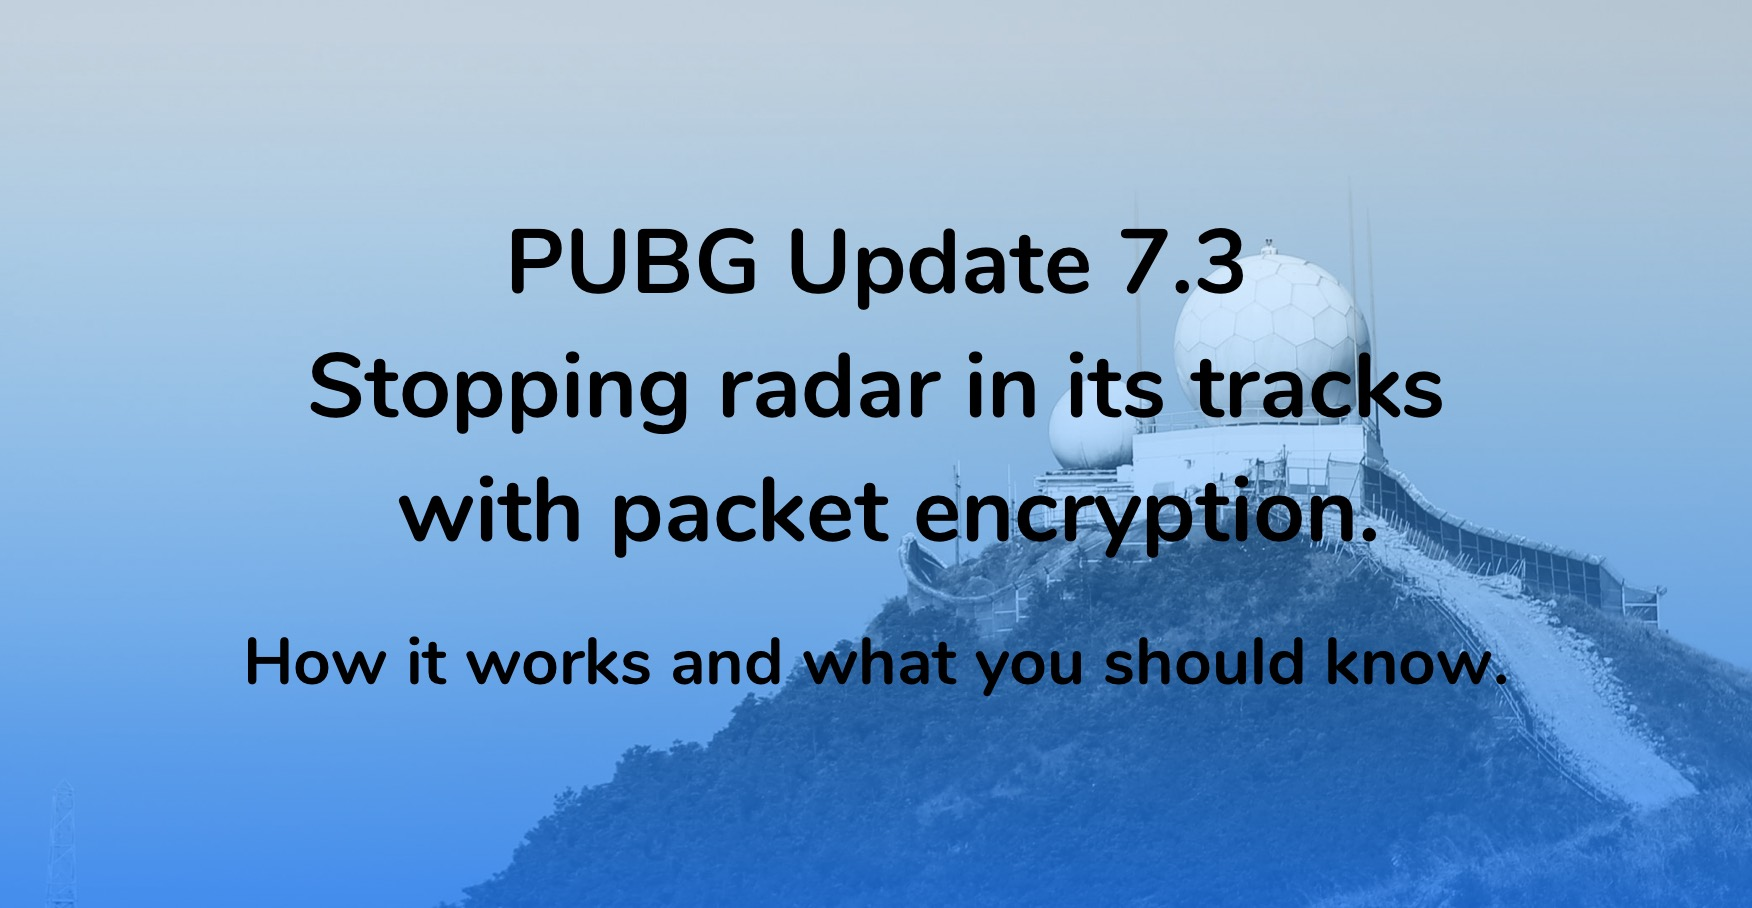 Update 7.3 - Stopping radar in its tracks with packet encryption